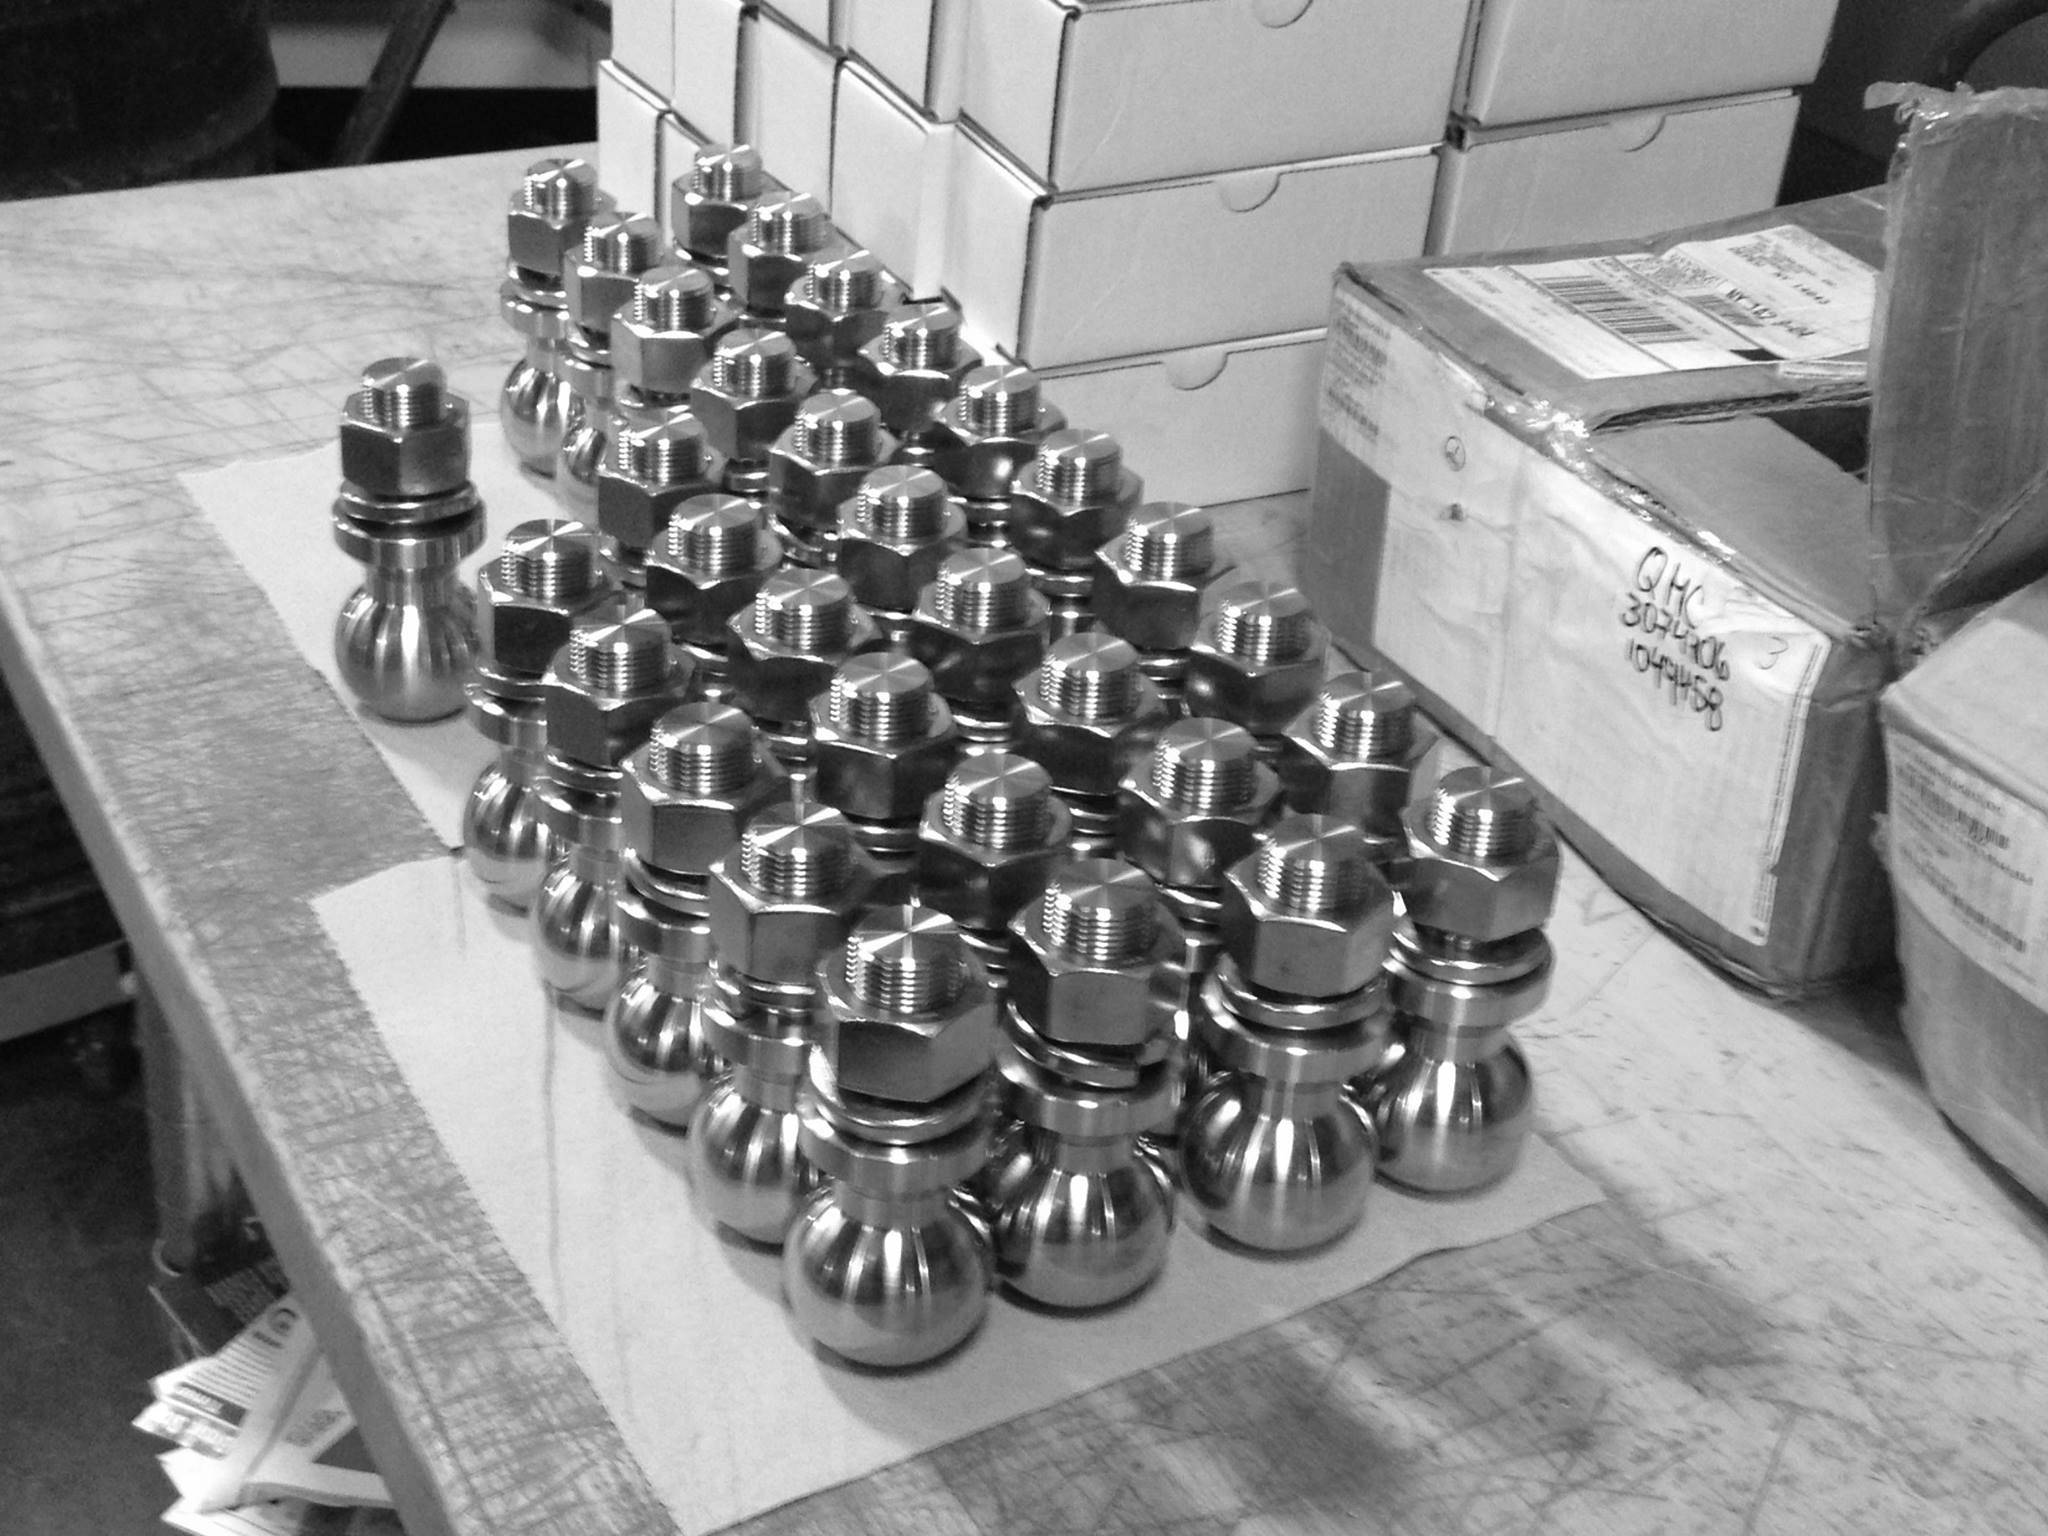 QMC's Stainless Steel Hitch Balls